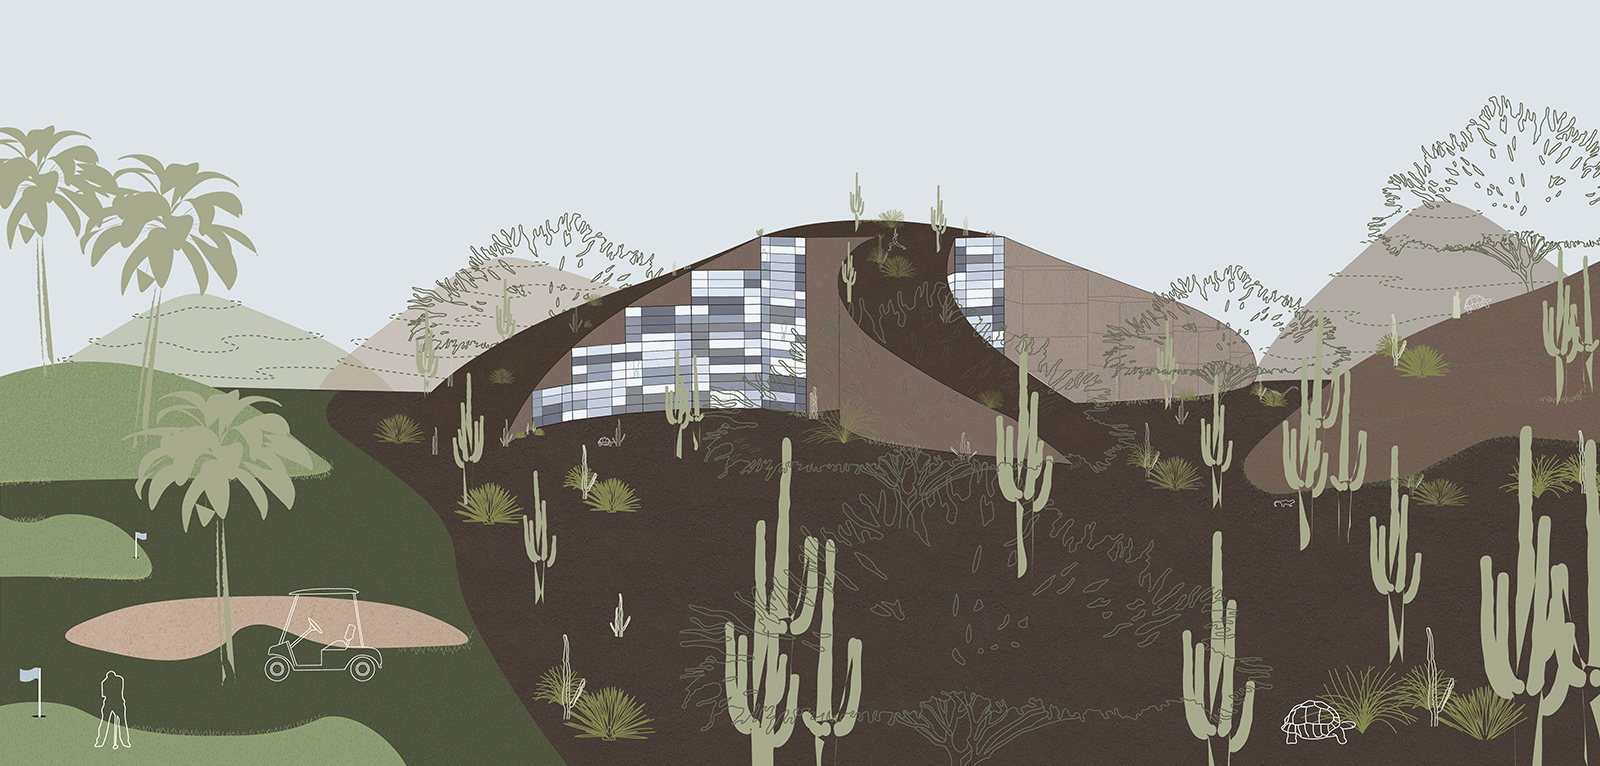 Series of connected perspectives showing the transformation of golf courses into housing landscapes by student Lauren Bennett